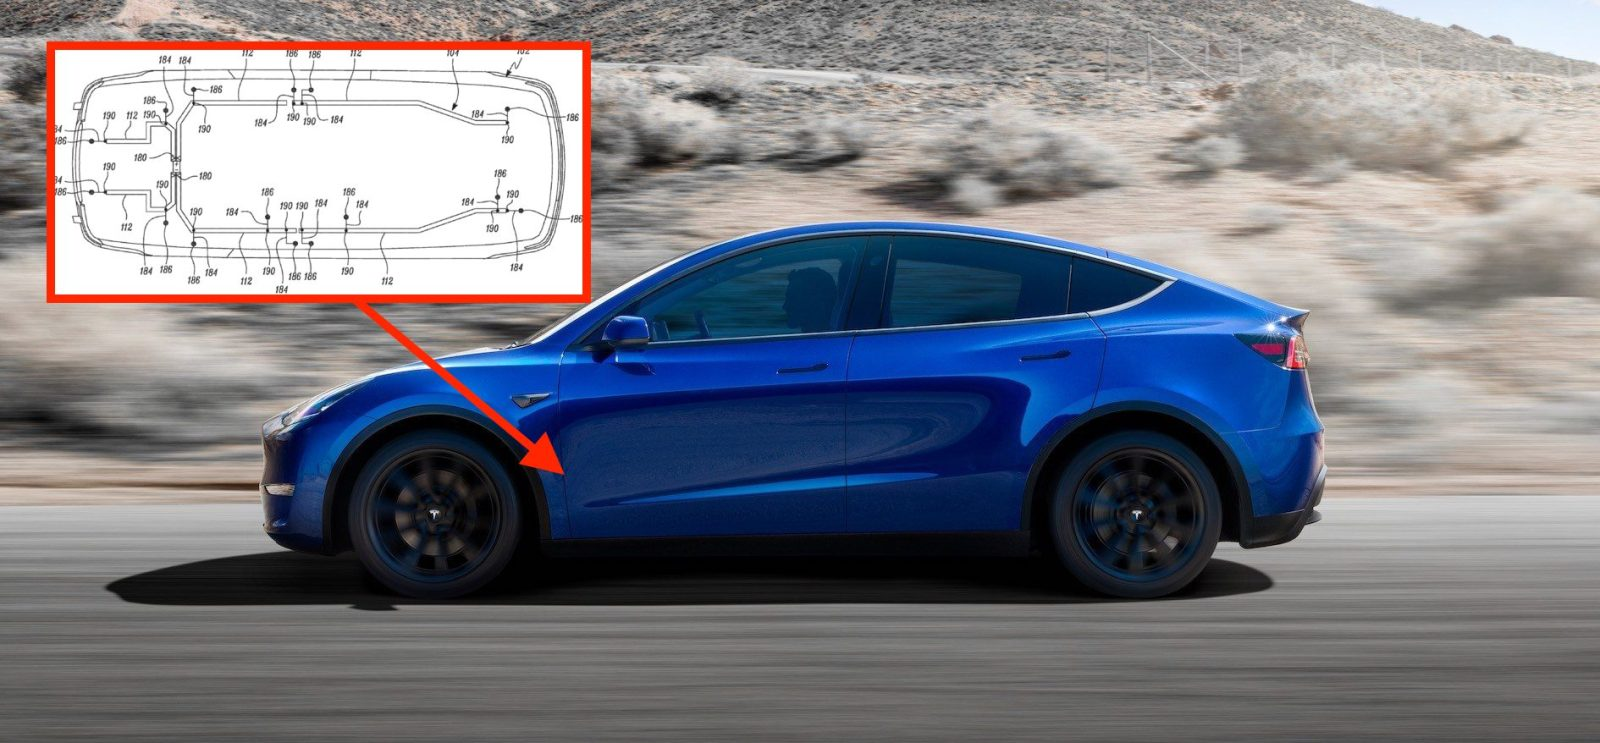 Tesla reveals revolutionary new wiring architecture to help ... on in a honda, in a scion, in a range rover, in a ram, in a hummer, in a ferrari, in a jeep, in a toyota, in a ford, in a bmw, in a rush, in a bush, in a volt, in a heart, in a gmc, in a rainbow,